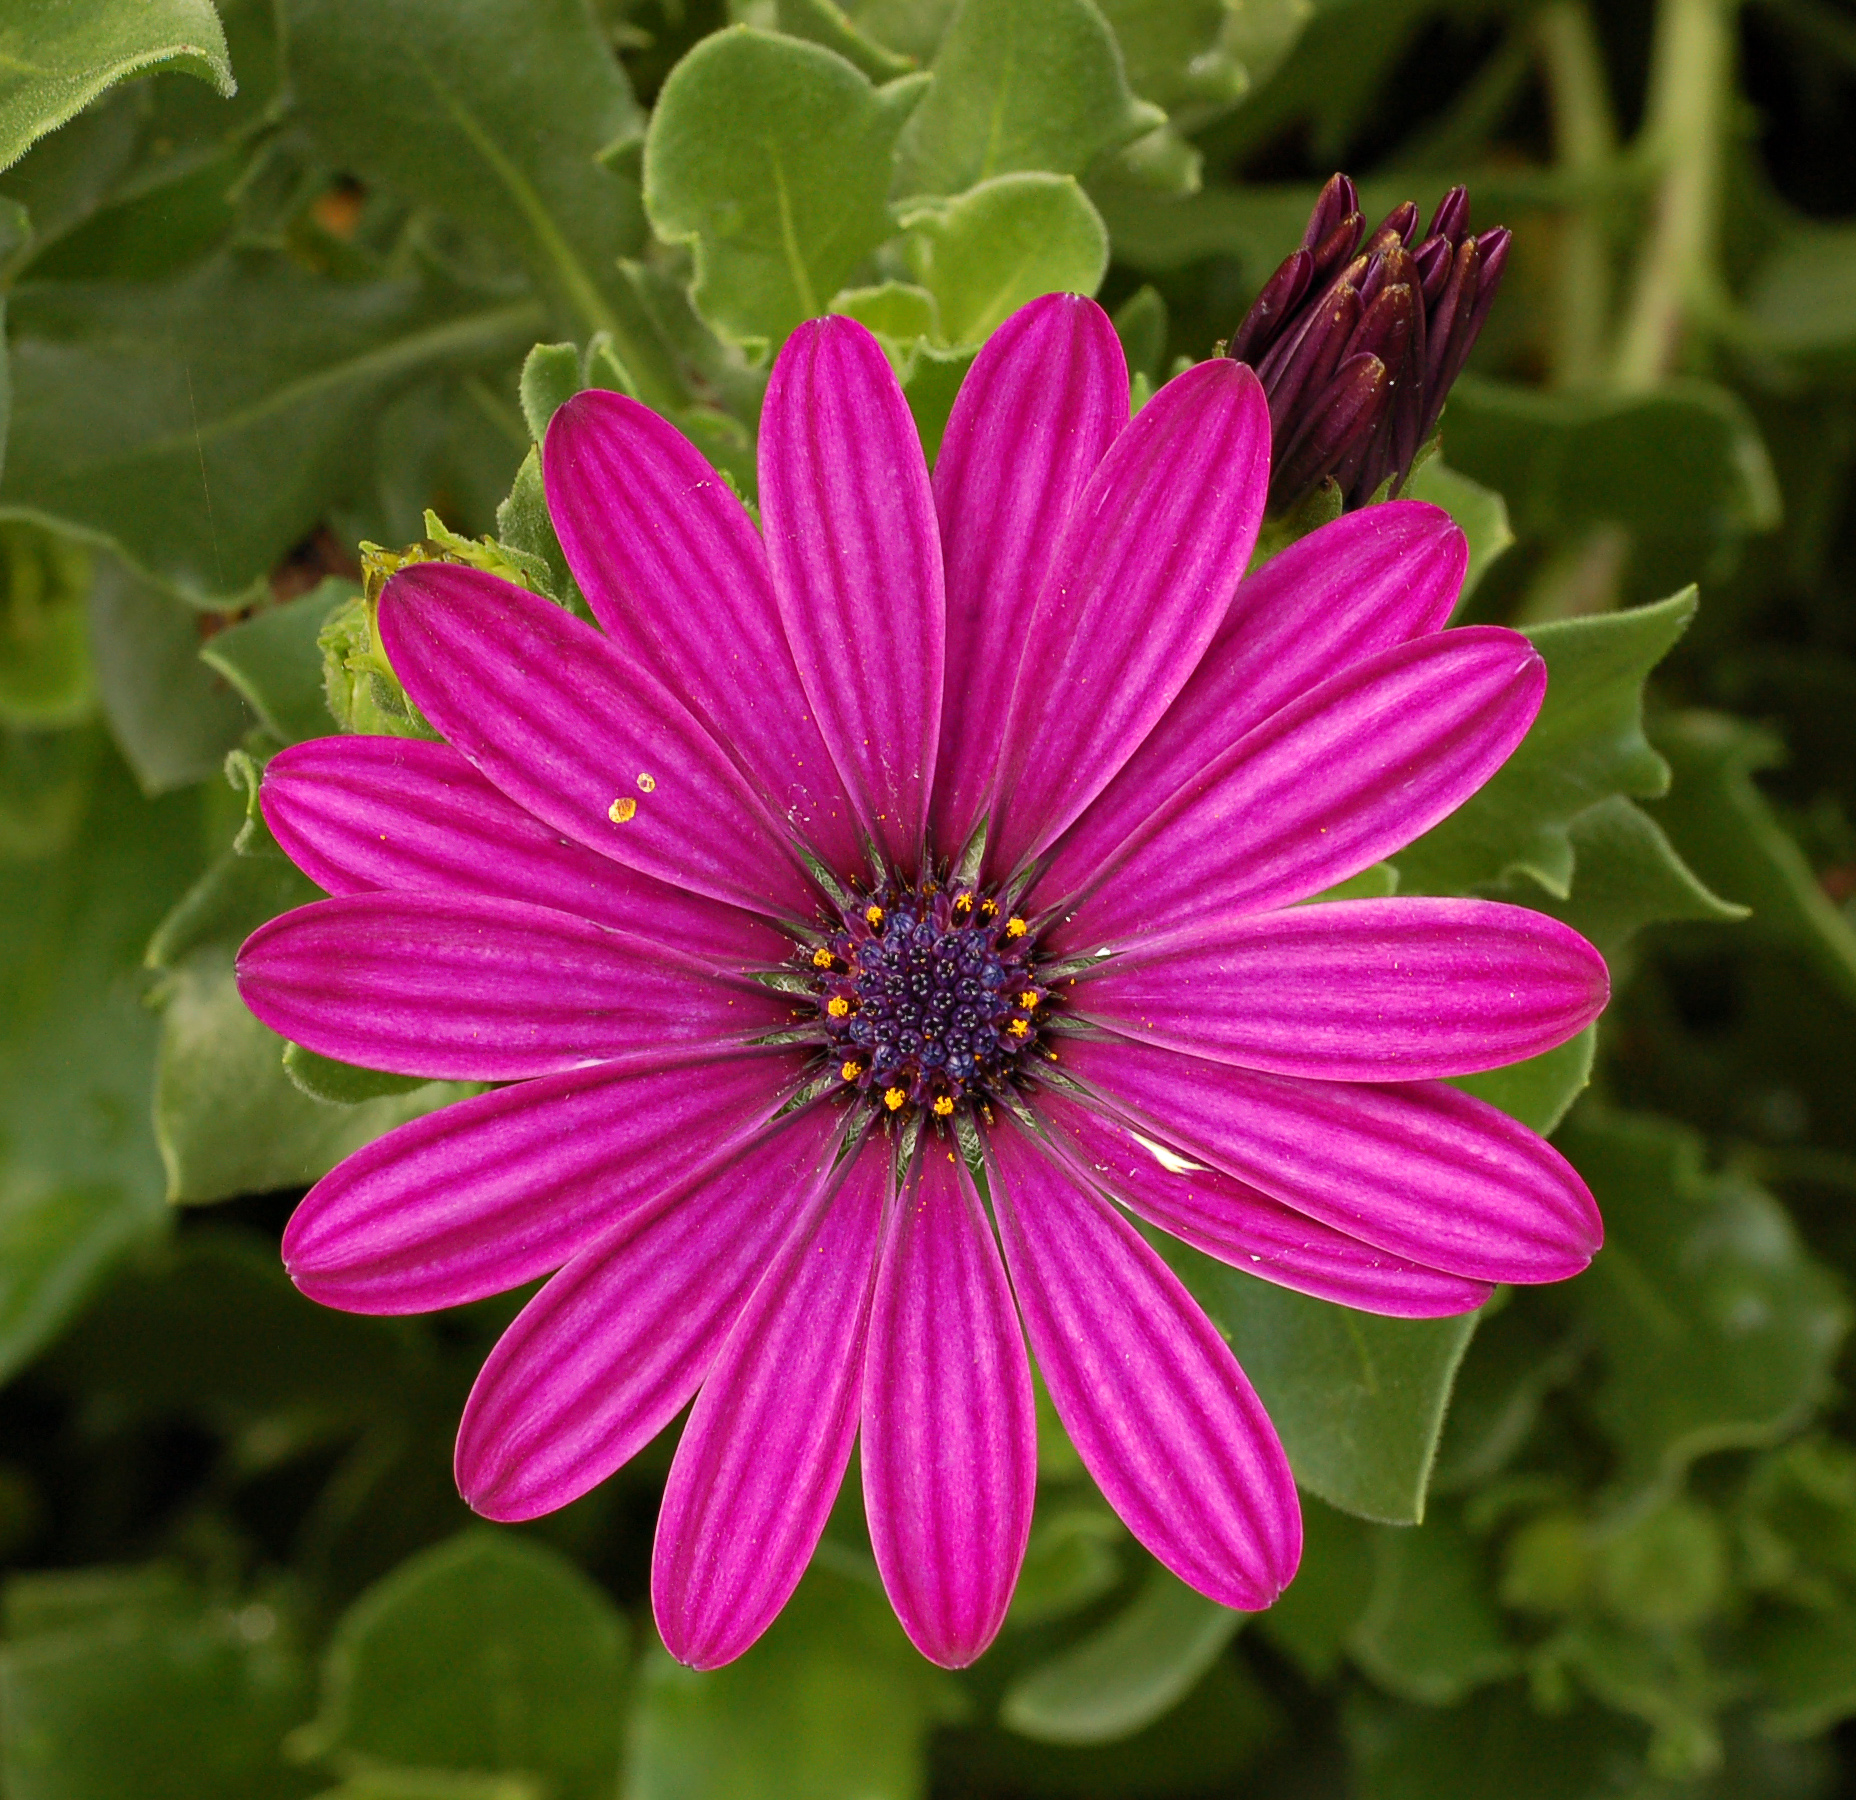 osteospermum tradewinds - group picture, image by tag ...: http://keywordpicture.com/keyword/osteospermum tradewinds